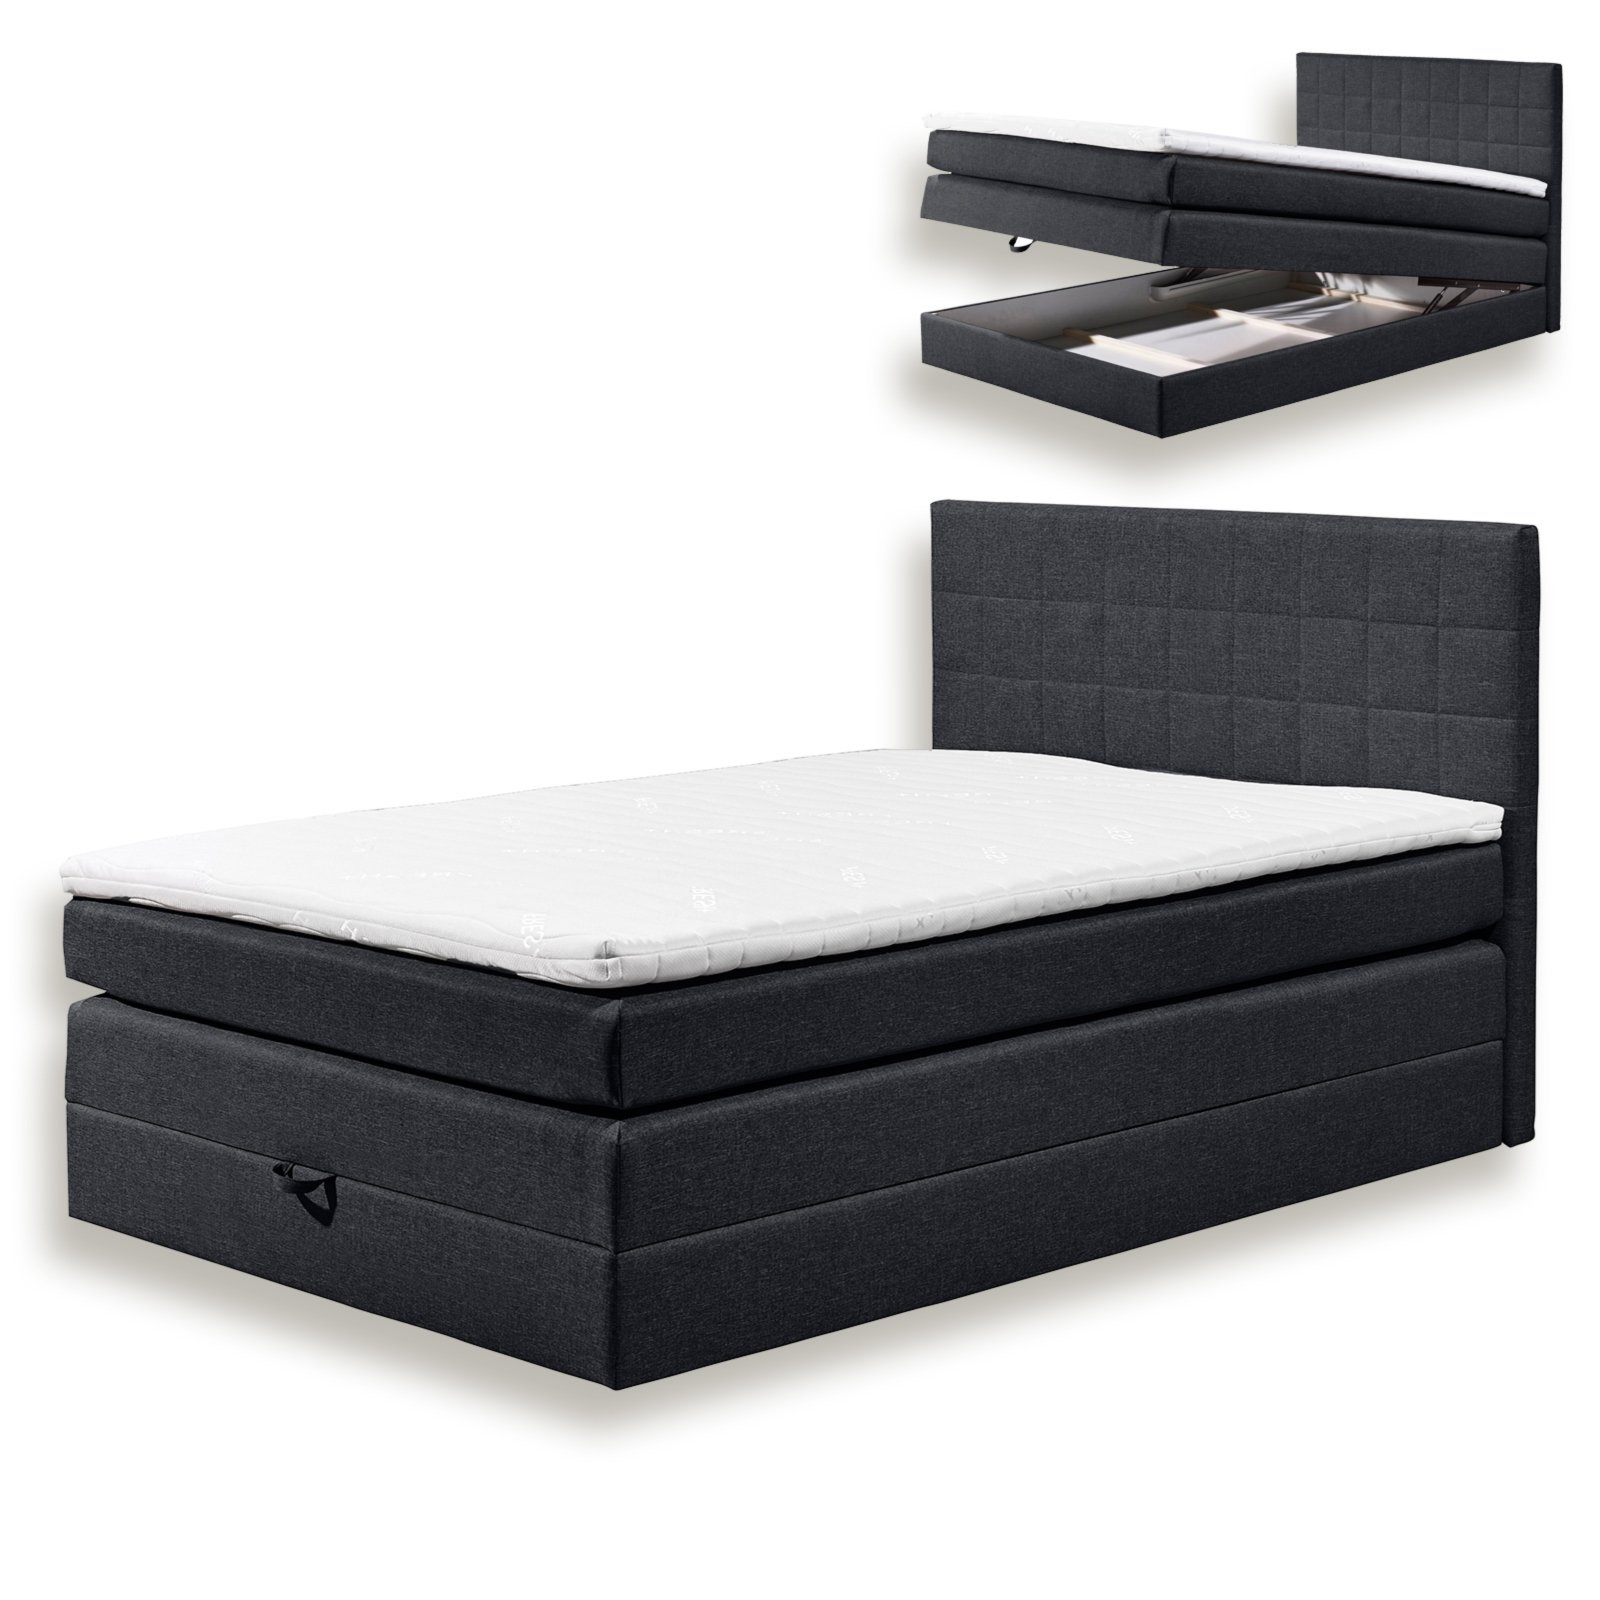 boxspringbett hawaii schwarz h2 140x200 cm. Black Bedroom Furniture Sets. Home Design Ideas